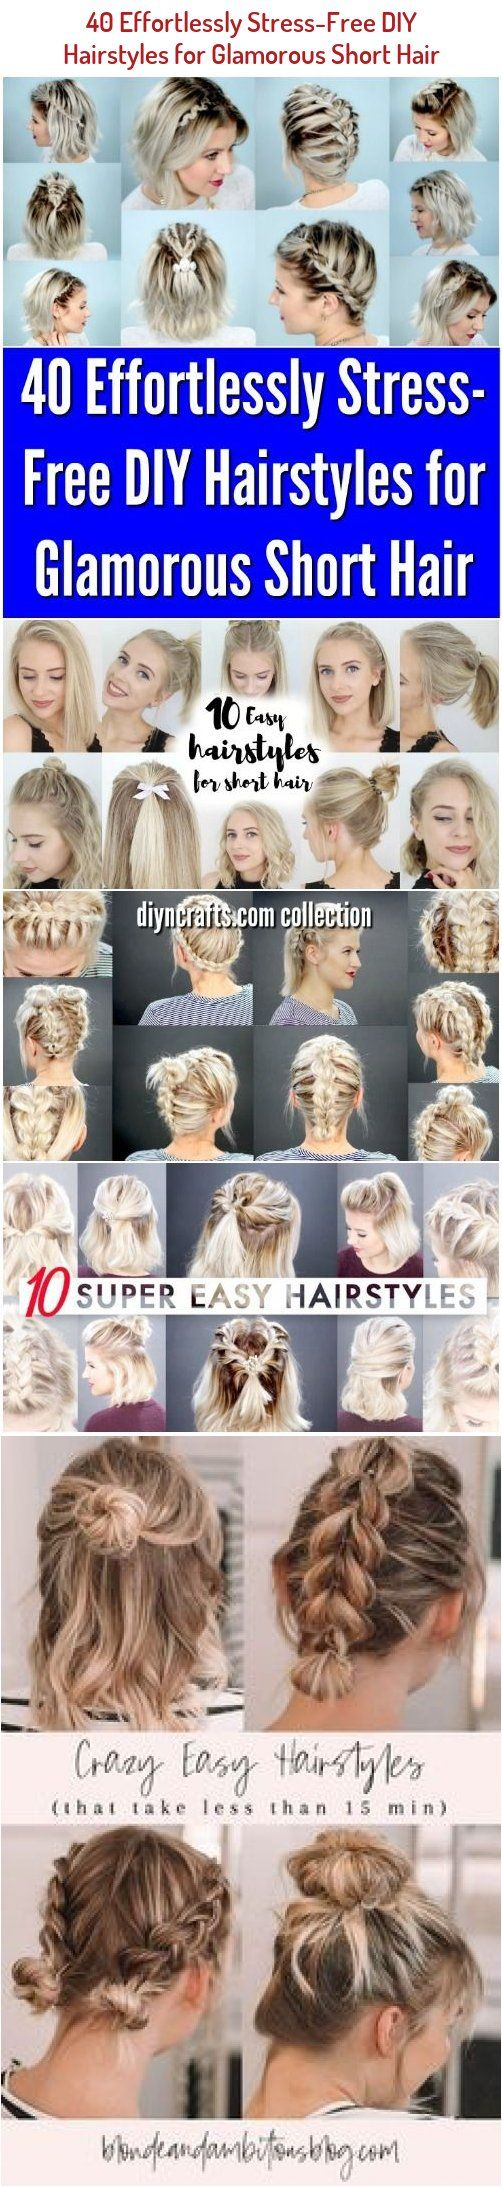 Pin On Hairstyles For Short Hair Easy